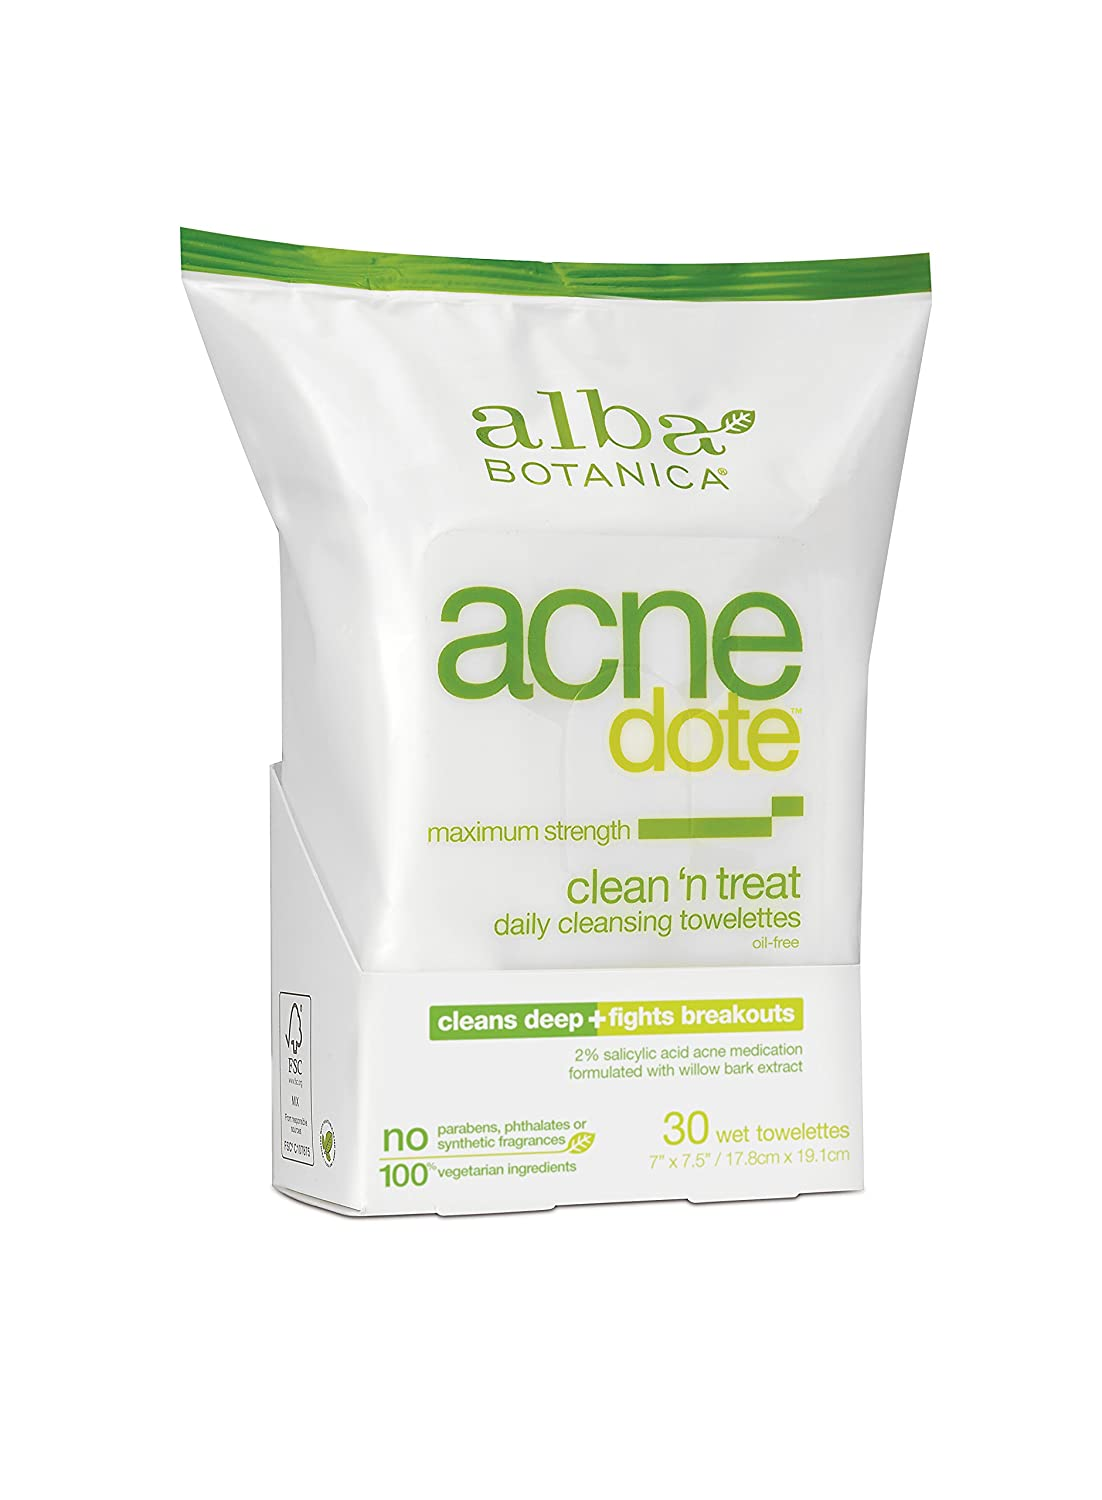 Alba Botanica - Natural ACNEdote Clean n Treat Towelettes(pack of 6) 3W Clinic Excellent White Cream (intensive Whitening) For Dry To Normal Skin Types 50g/1.7oz